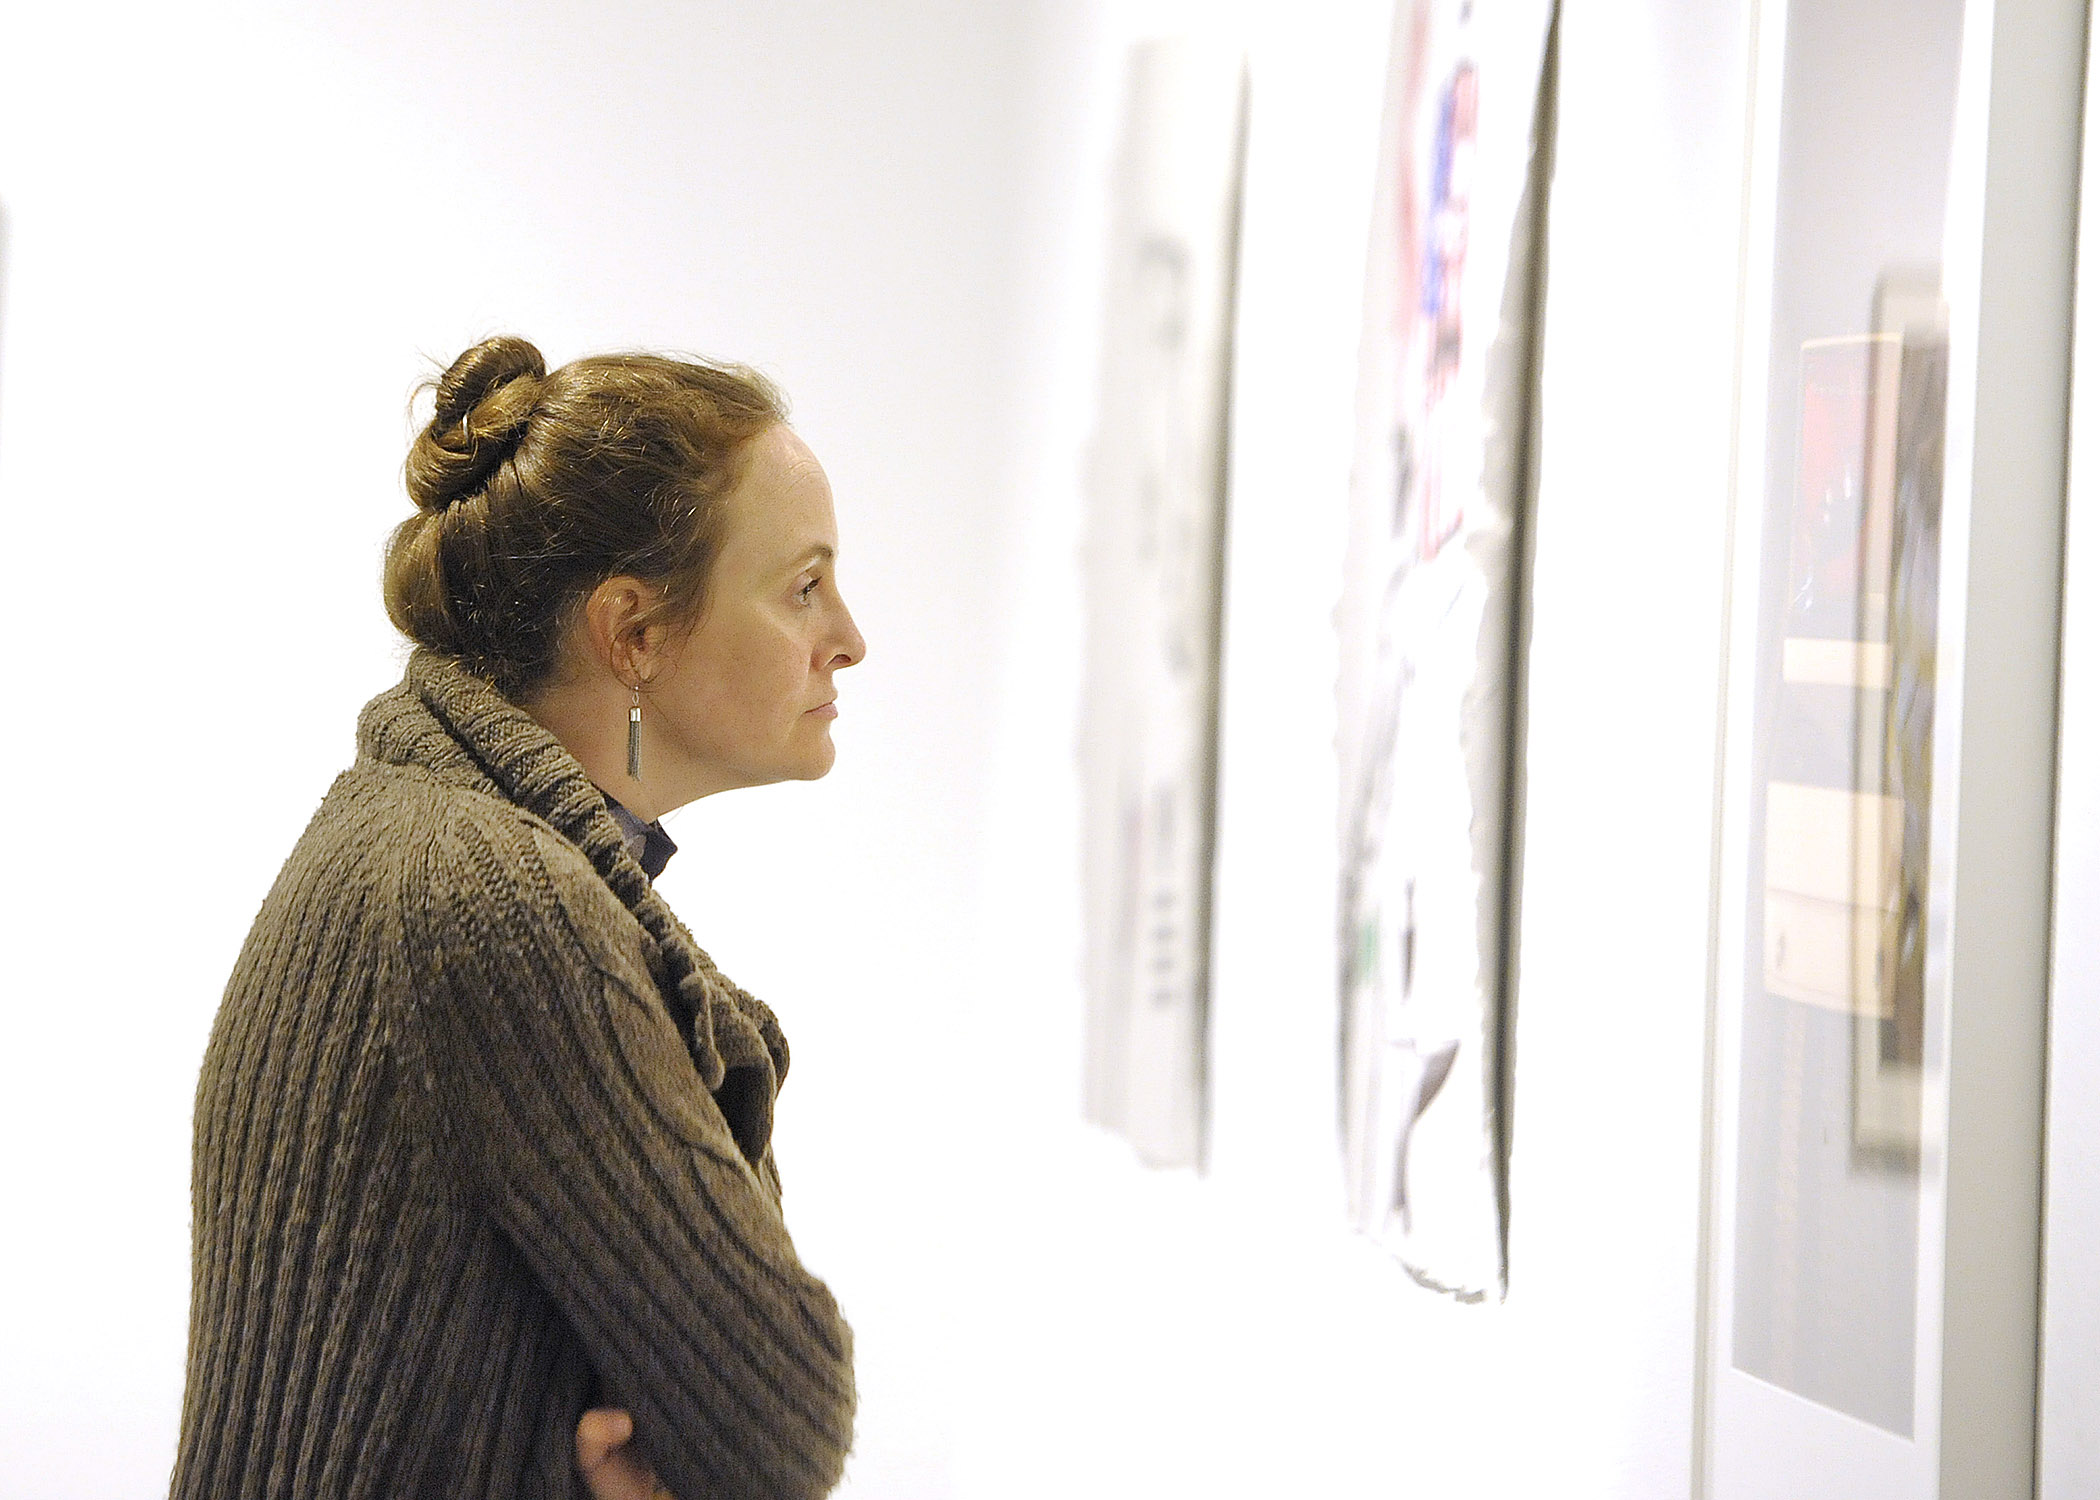 Woman Looking at Artwork by Dirty Canteen